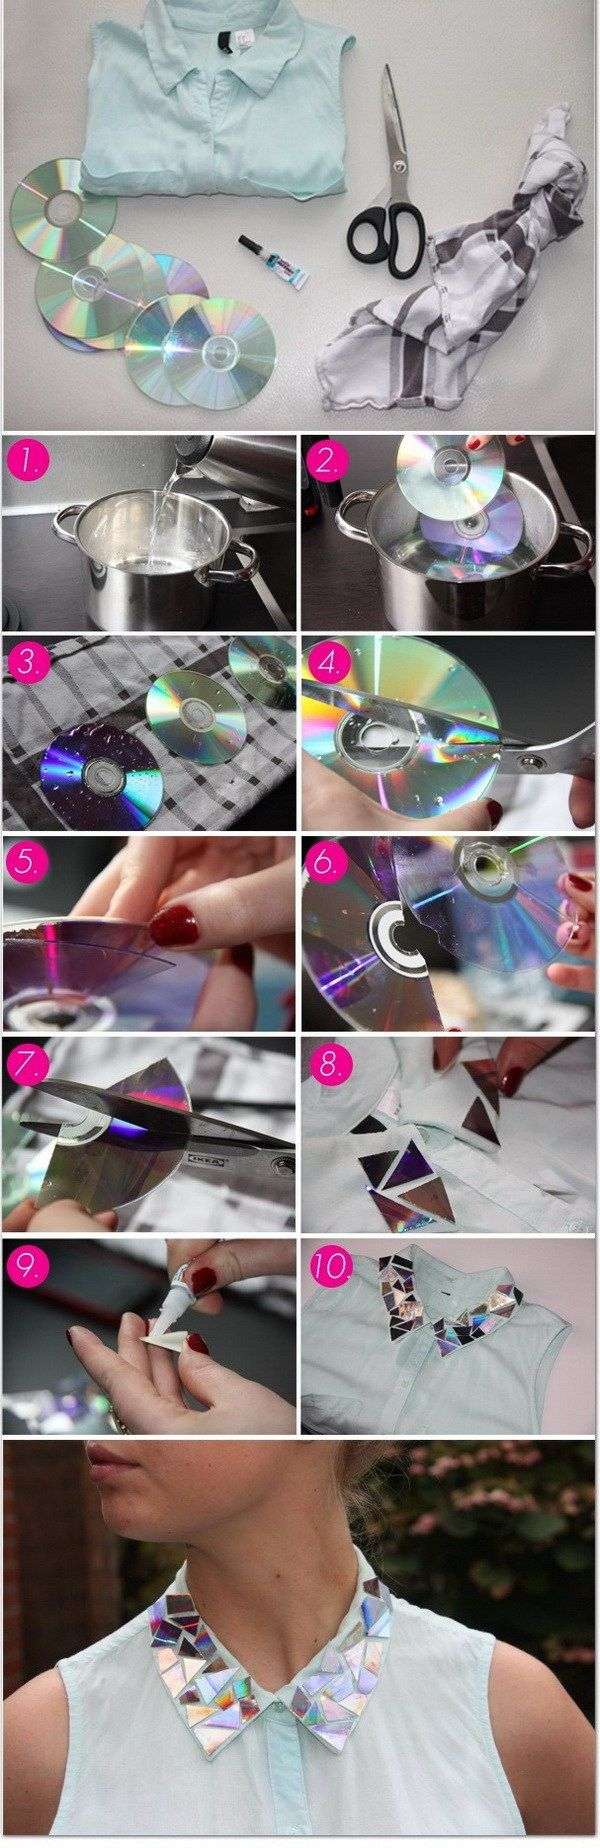 DIY Sparkly Collar with CDs. Refashion the old tmxz,-shirt by creating this sparkle collar with old CD or DVD pieces and get yourself in style.